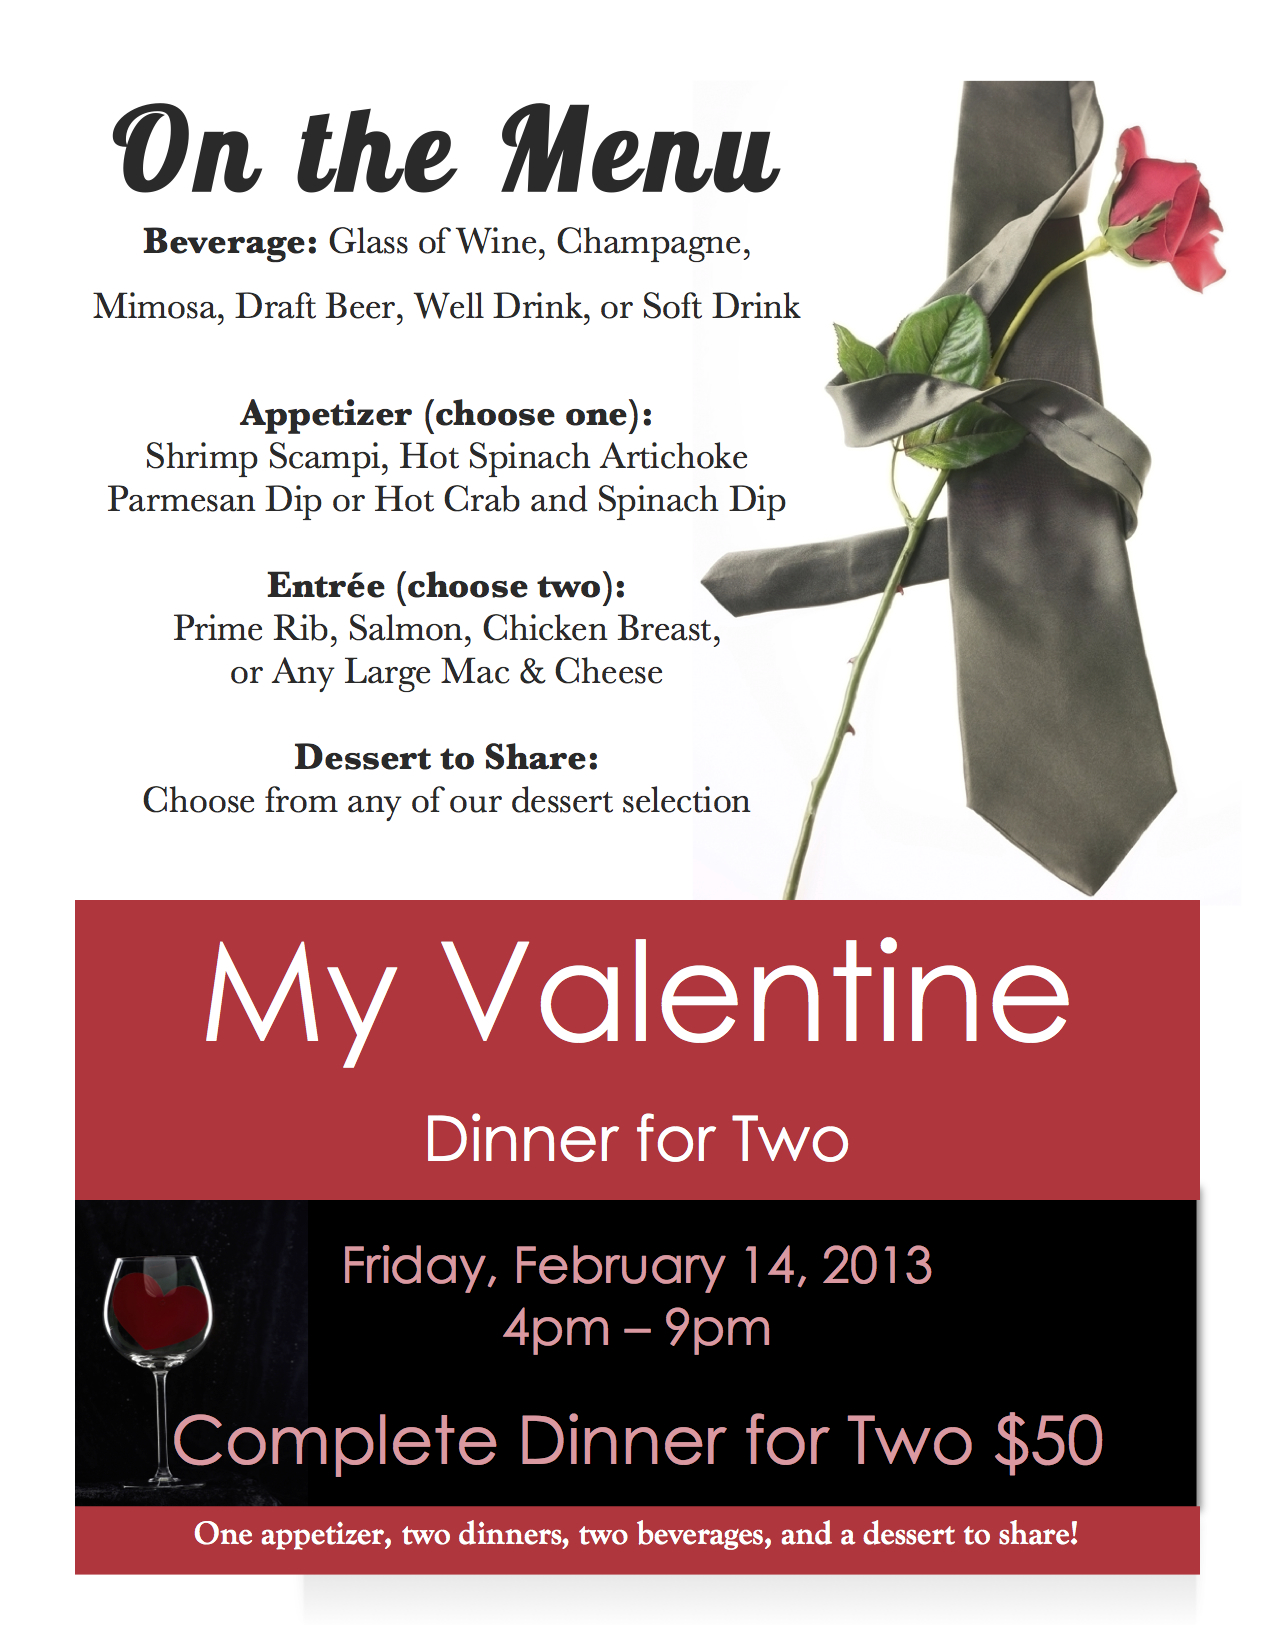 valentines day special 2014 « magills restaurant & catering, Ideas